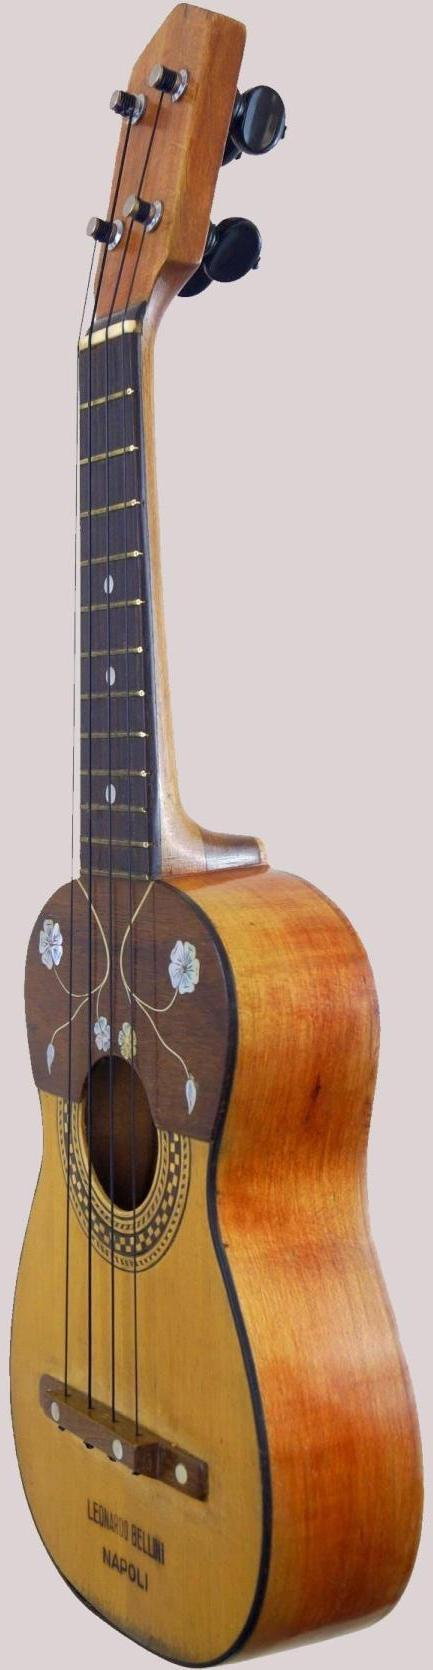 L bellini decorated Soprano Ukulele